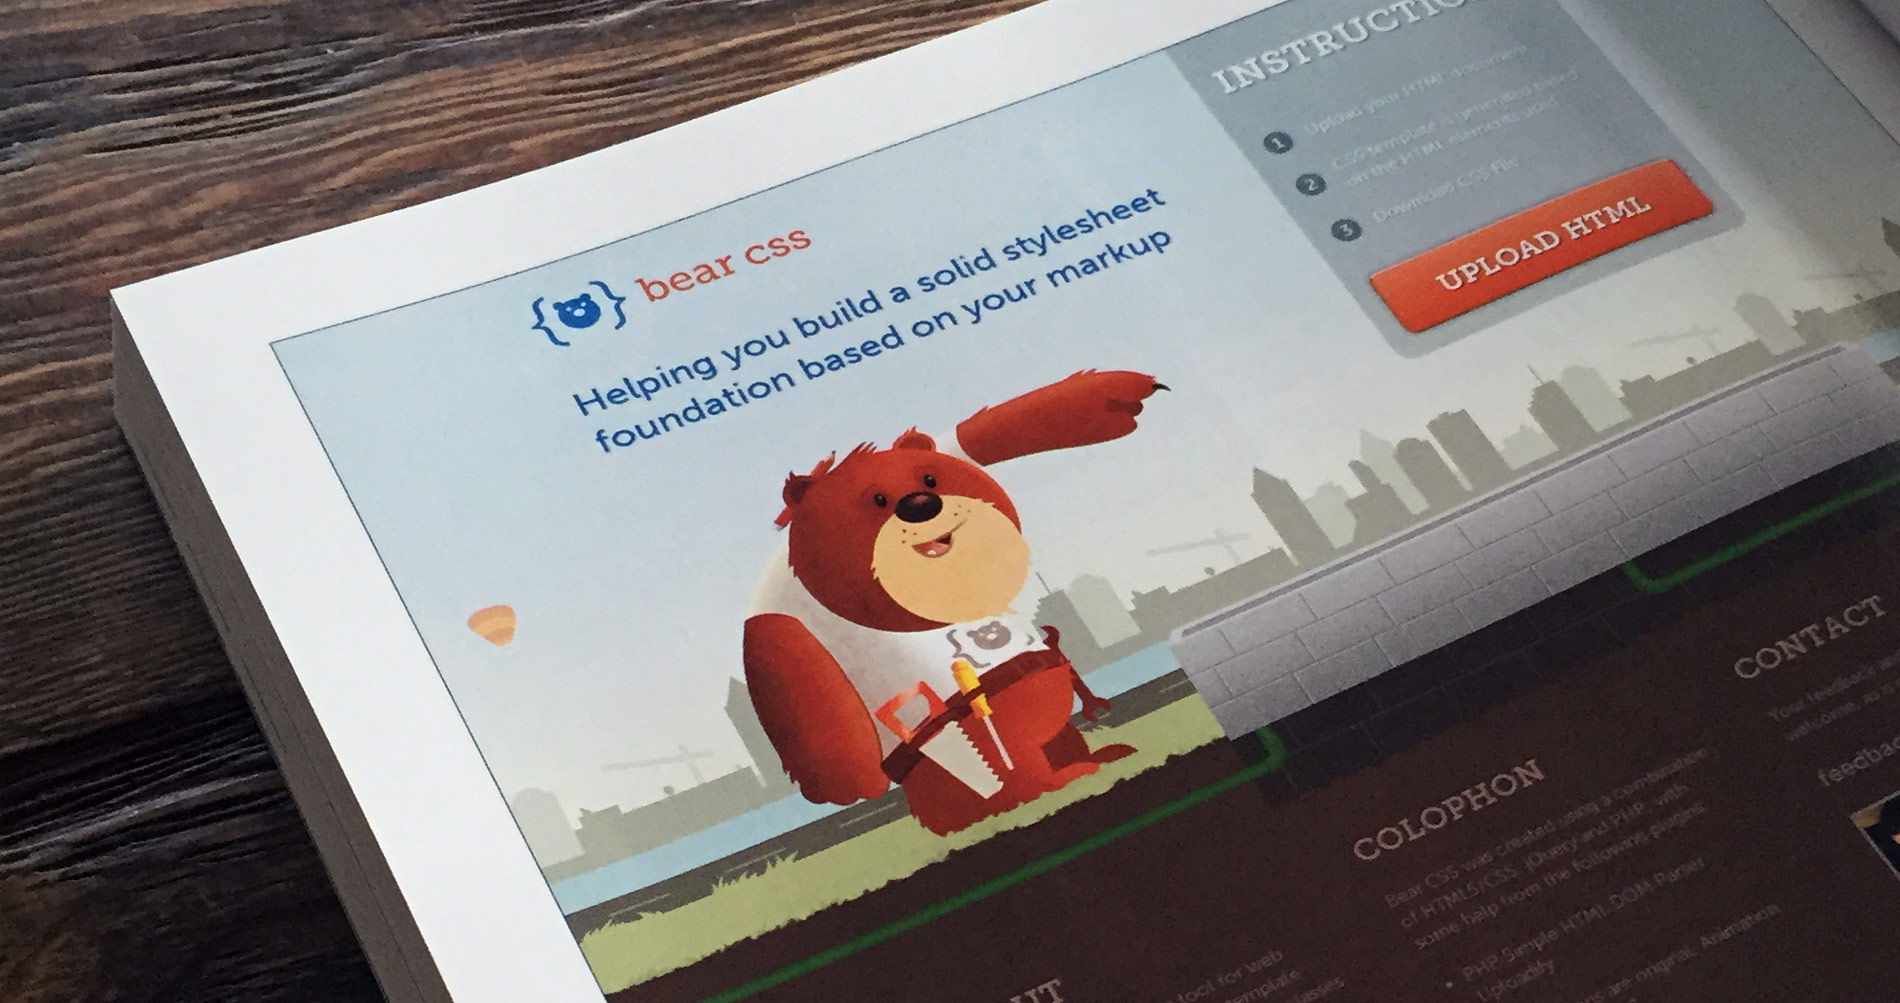 Bear CSS featured in The Web Designers Idea Book